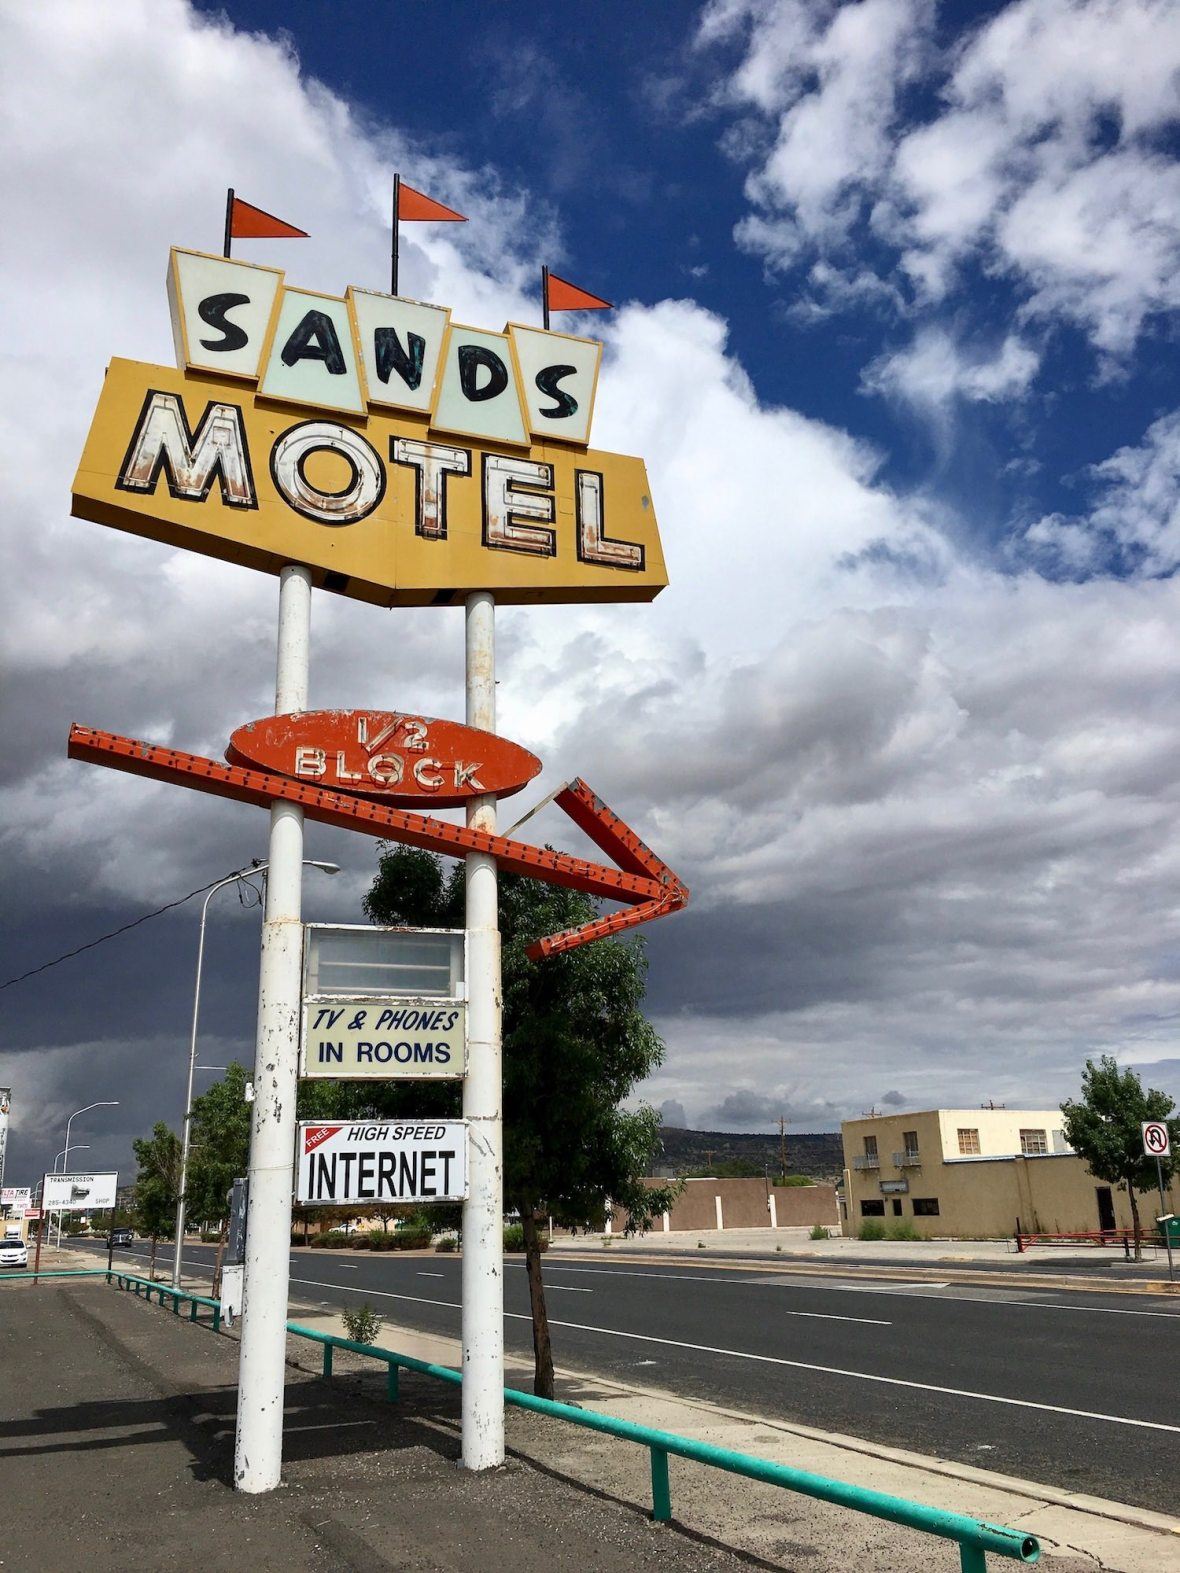 Sands Motel just off Route 66 in Grants New Mexico